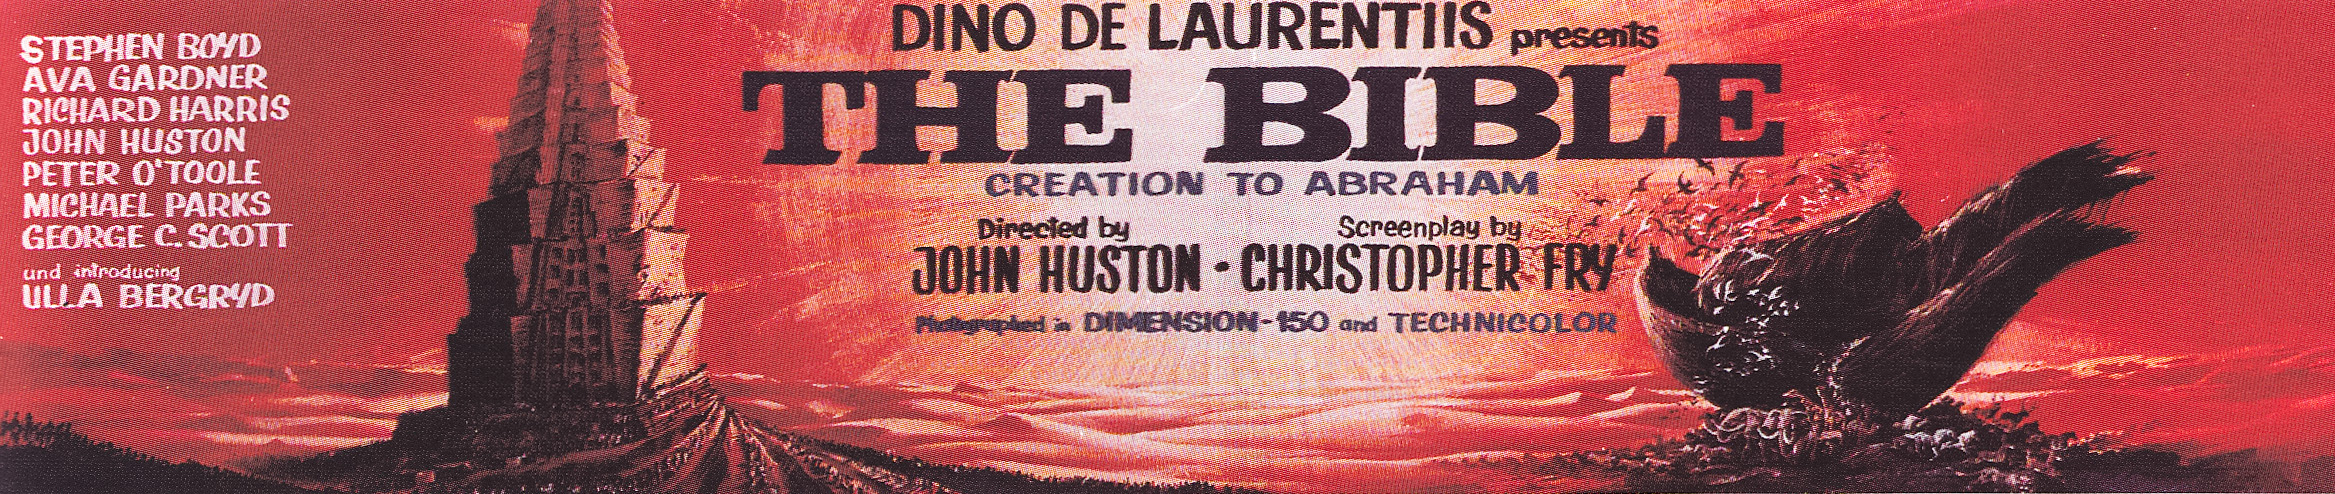 A billboard for John Huston's The Bible (1966), painted by Renato Casaro. The billboard spent many months in place overlooking Sunset Boulevard in Los Angeles.